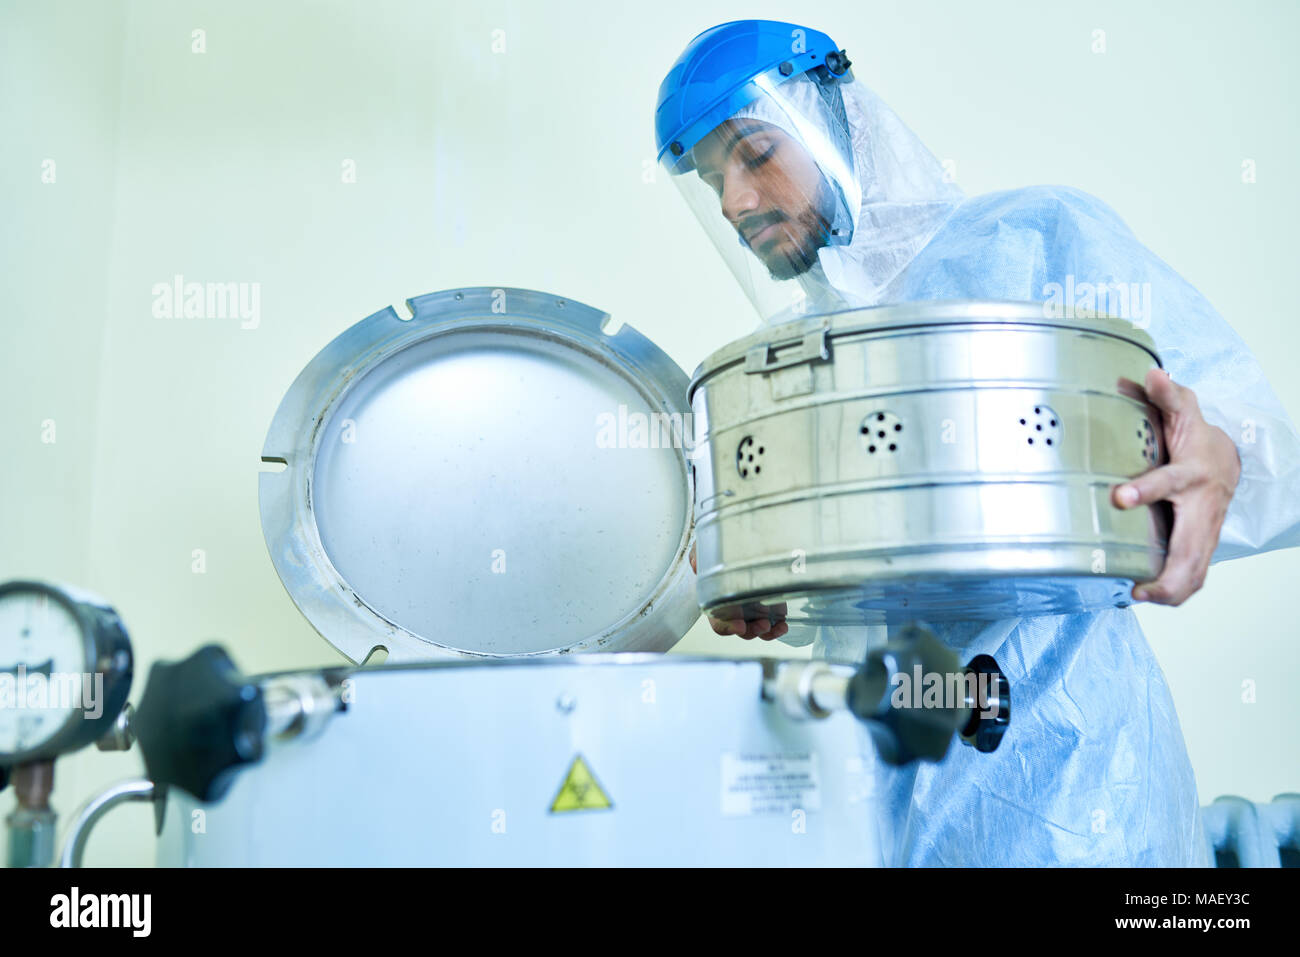 Laboratory assistant putting container into centrifuge - Stock Image